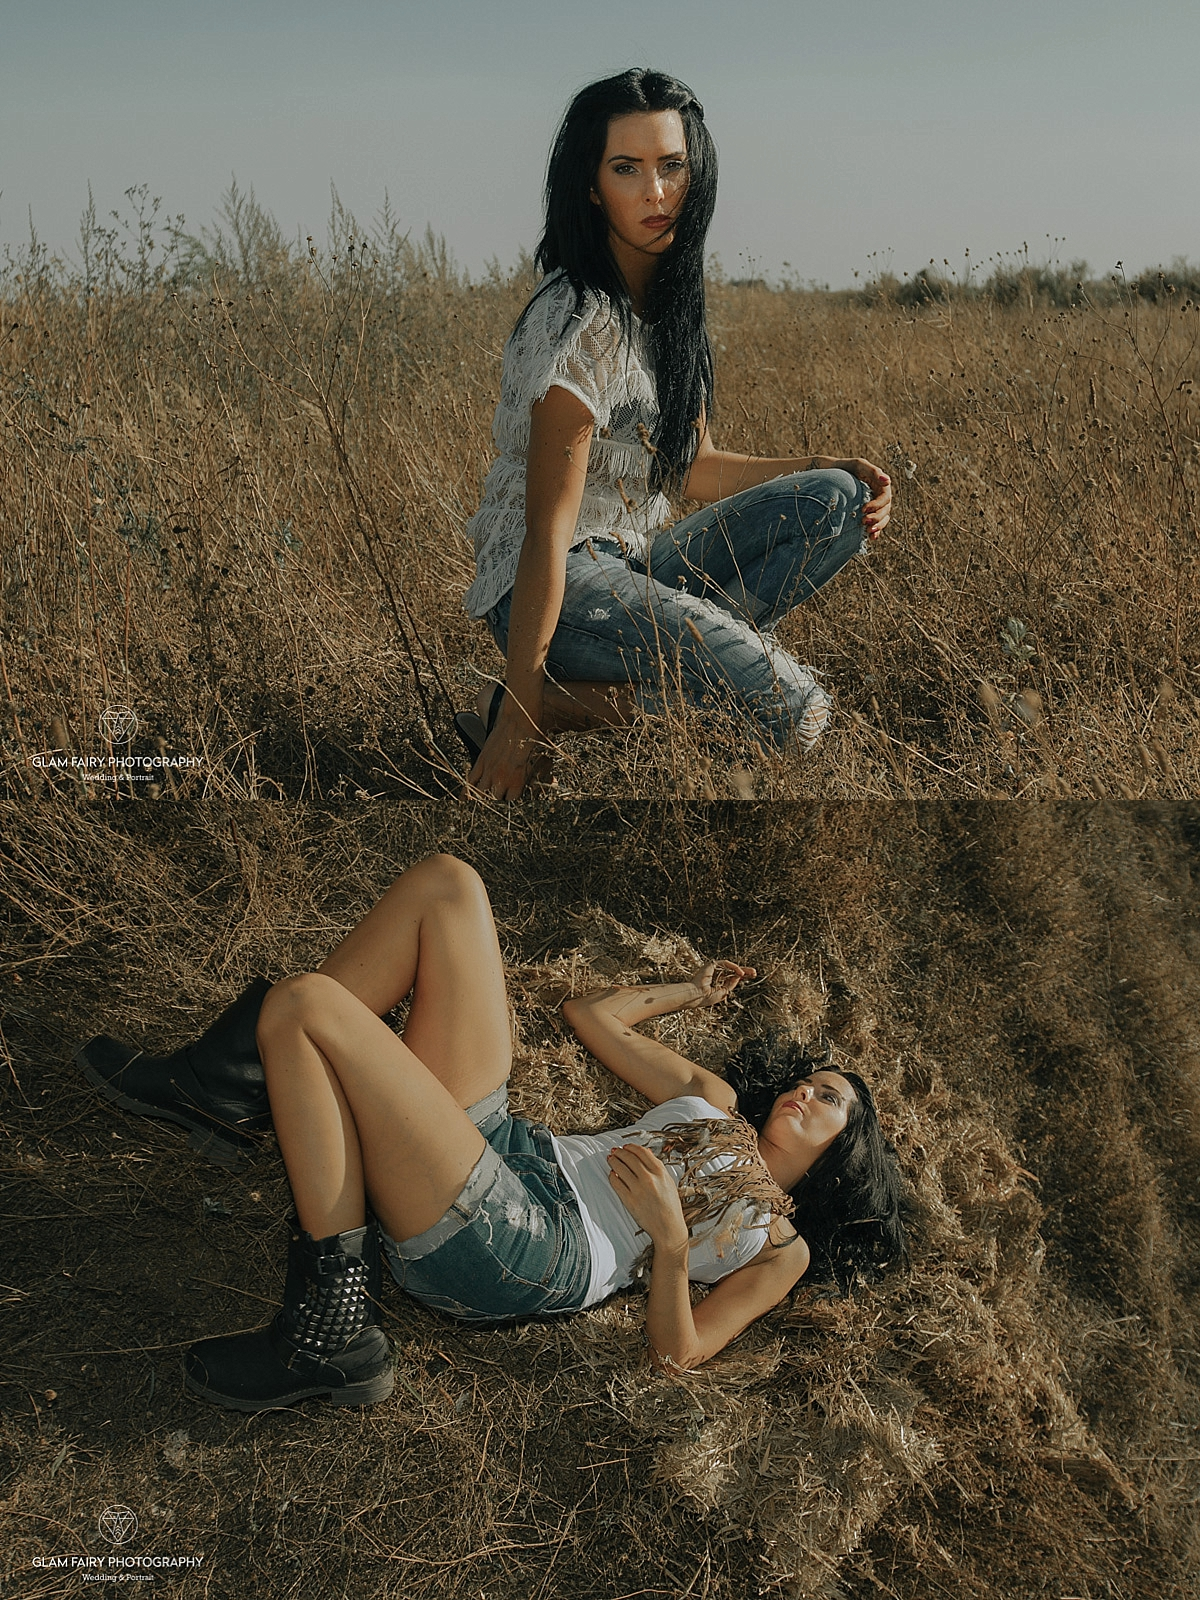 GlamFairyPhotography-seance-country-rock-juliette_0003